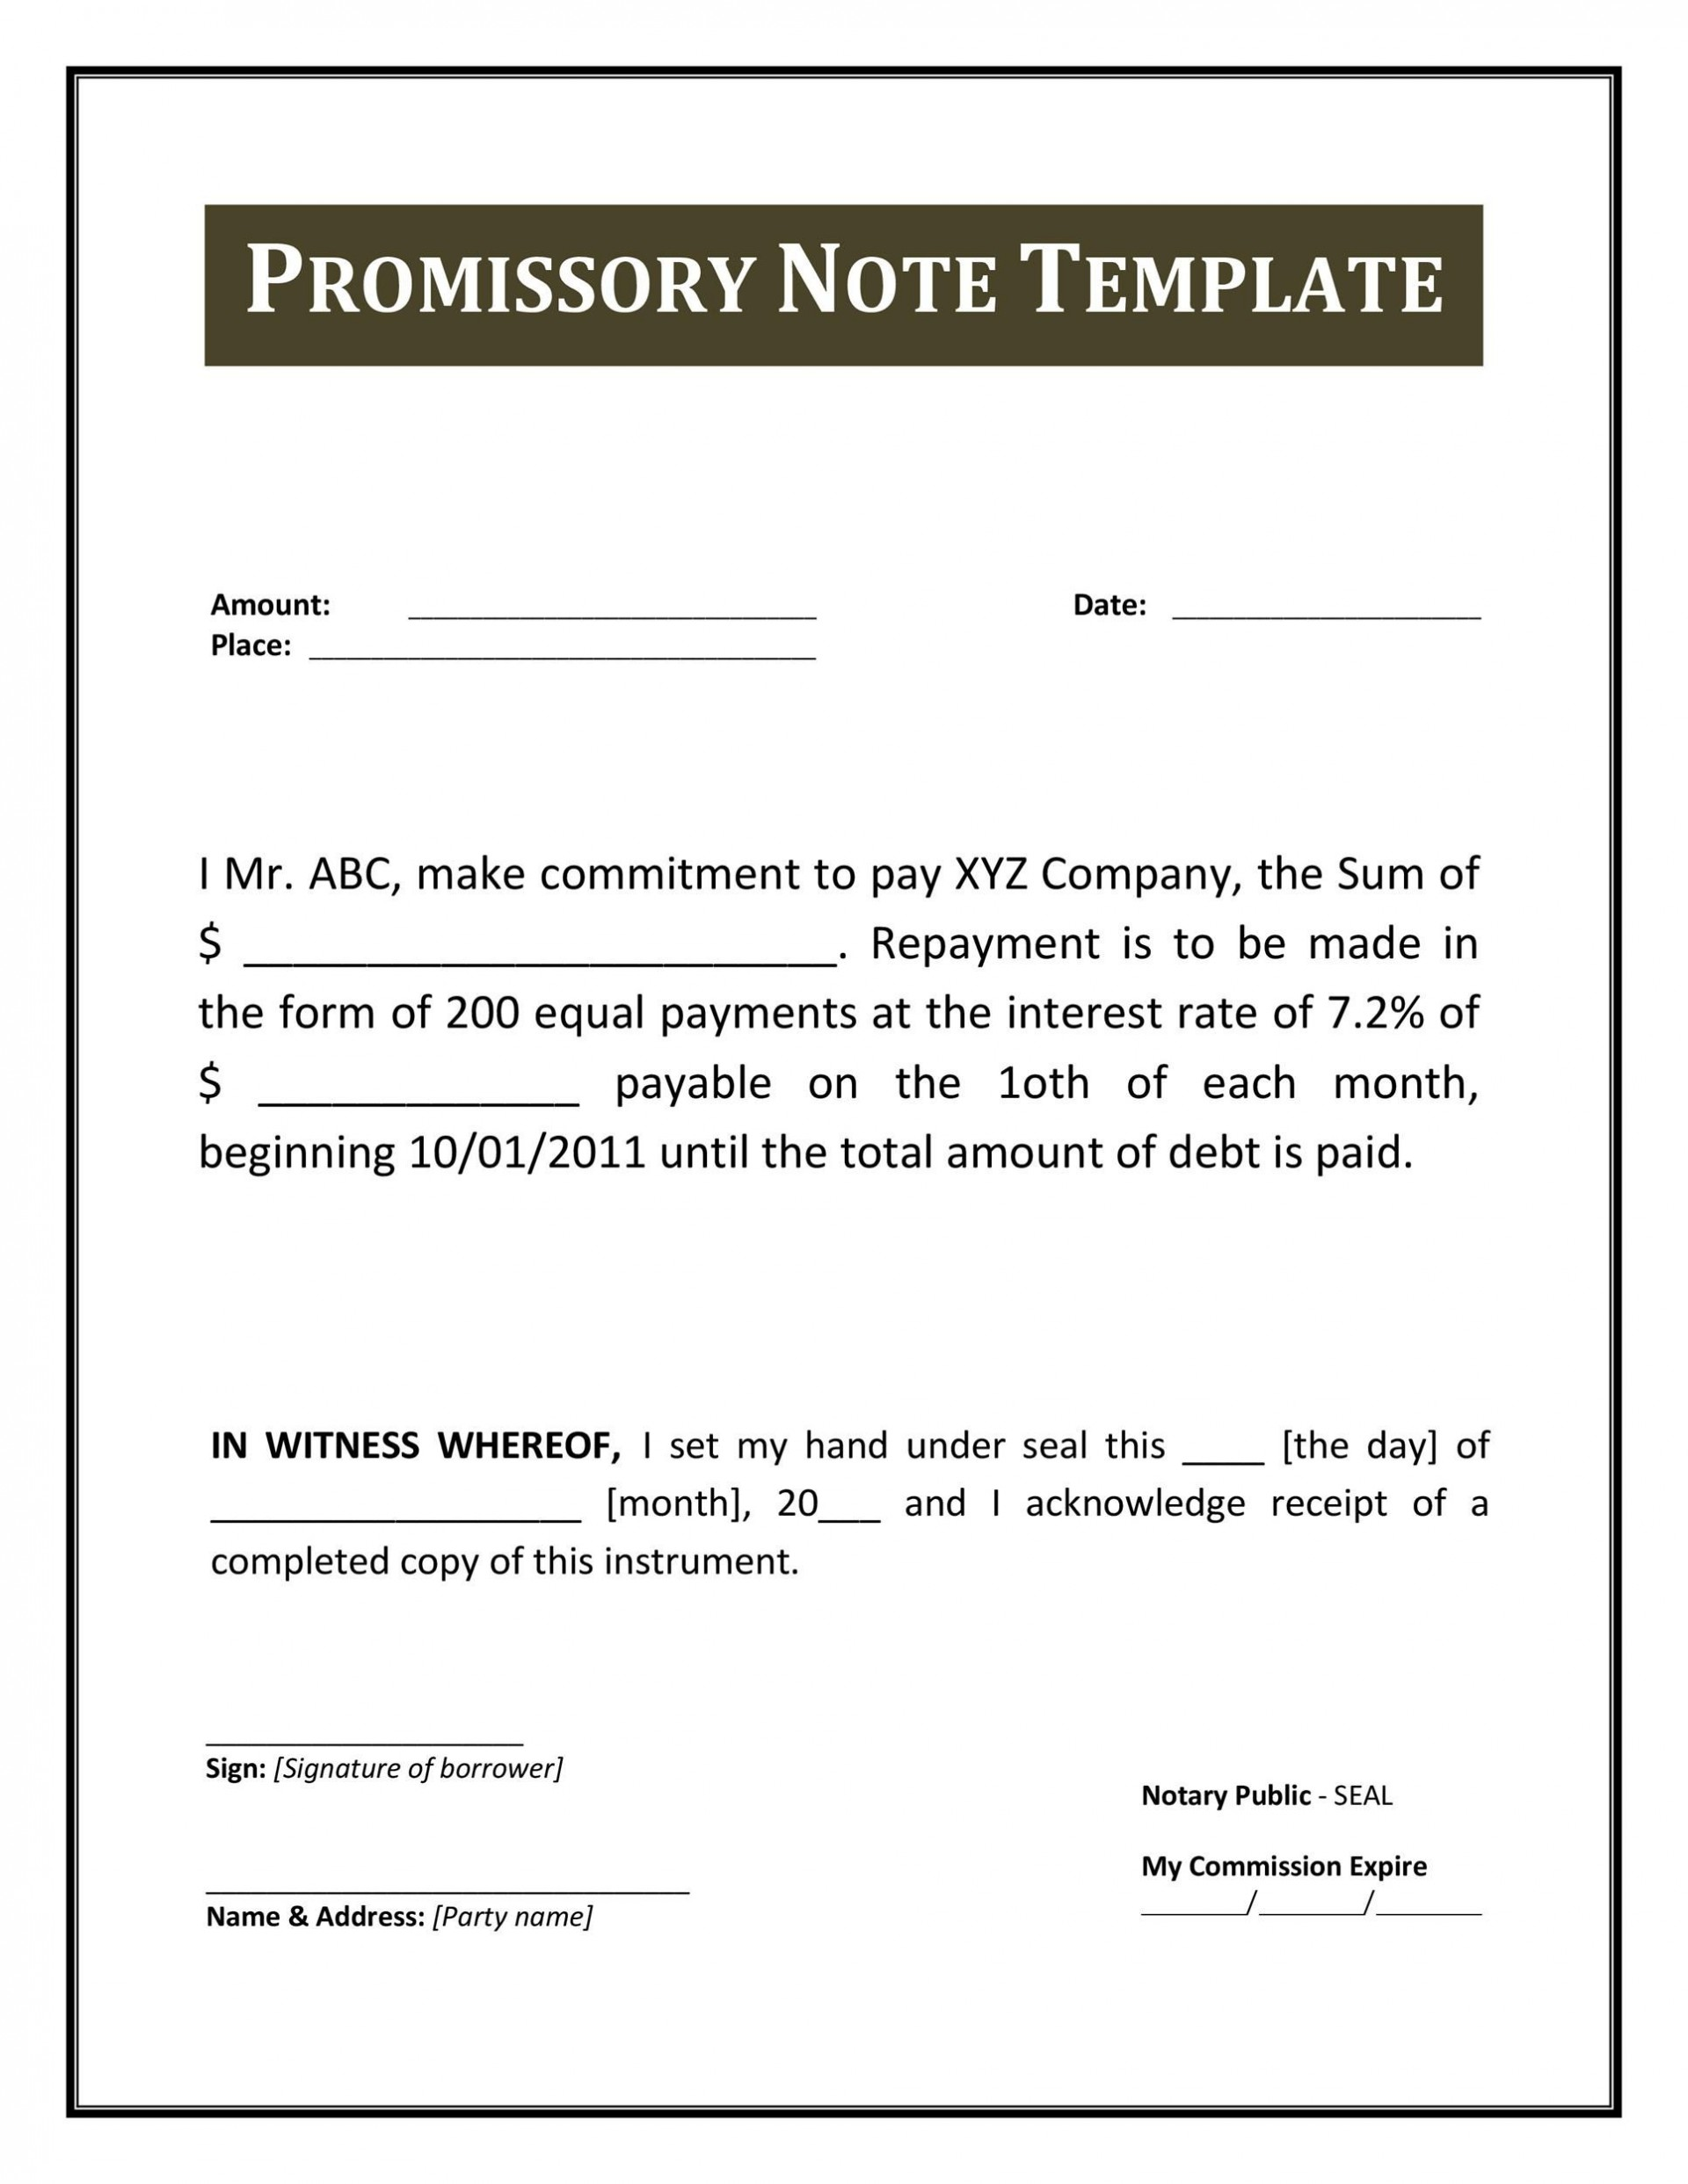 004 Breathtaking Promissory Note Template Word Sample  Document Uk In Format1920